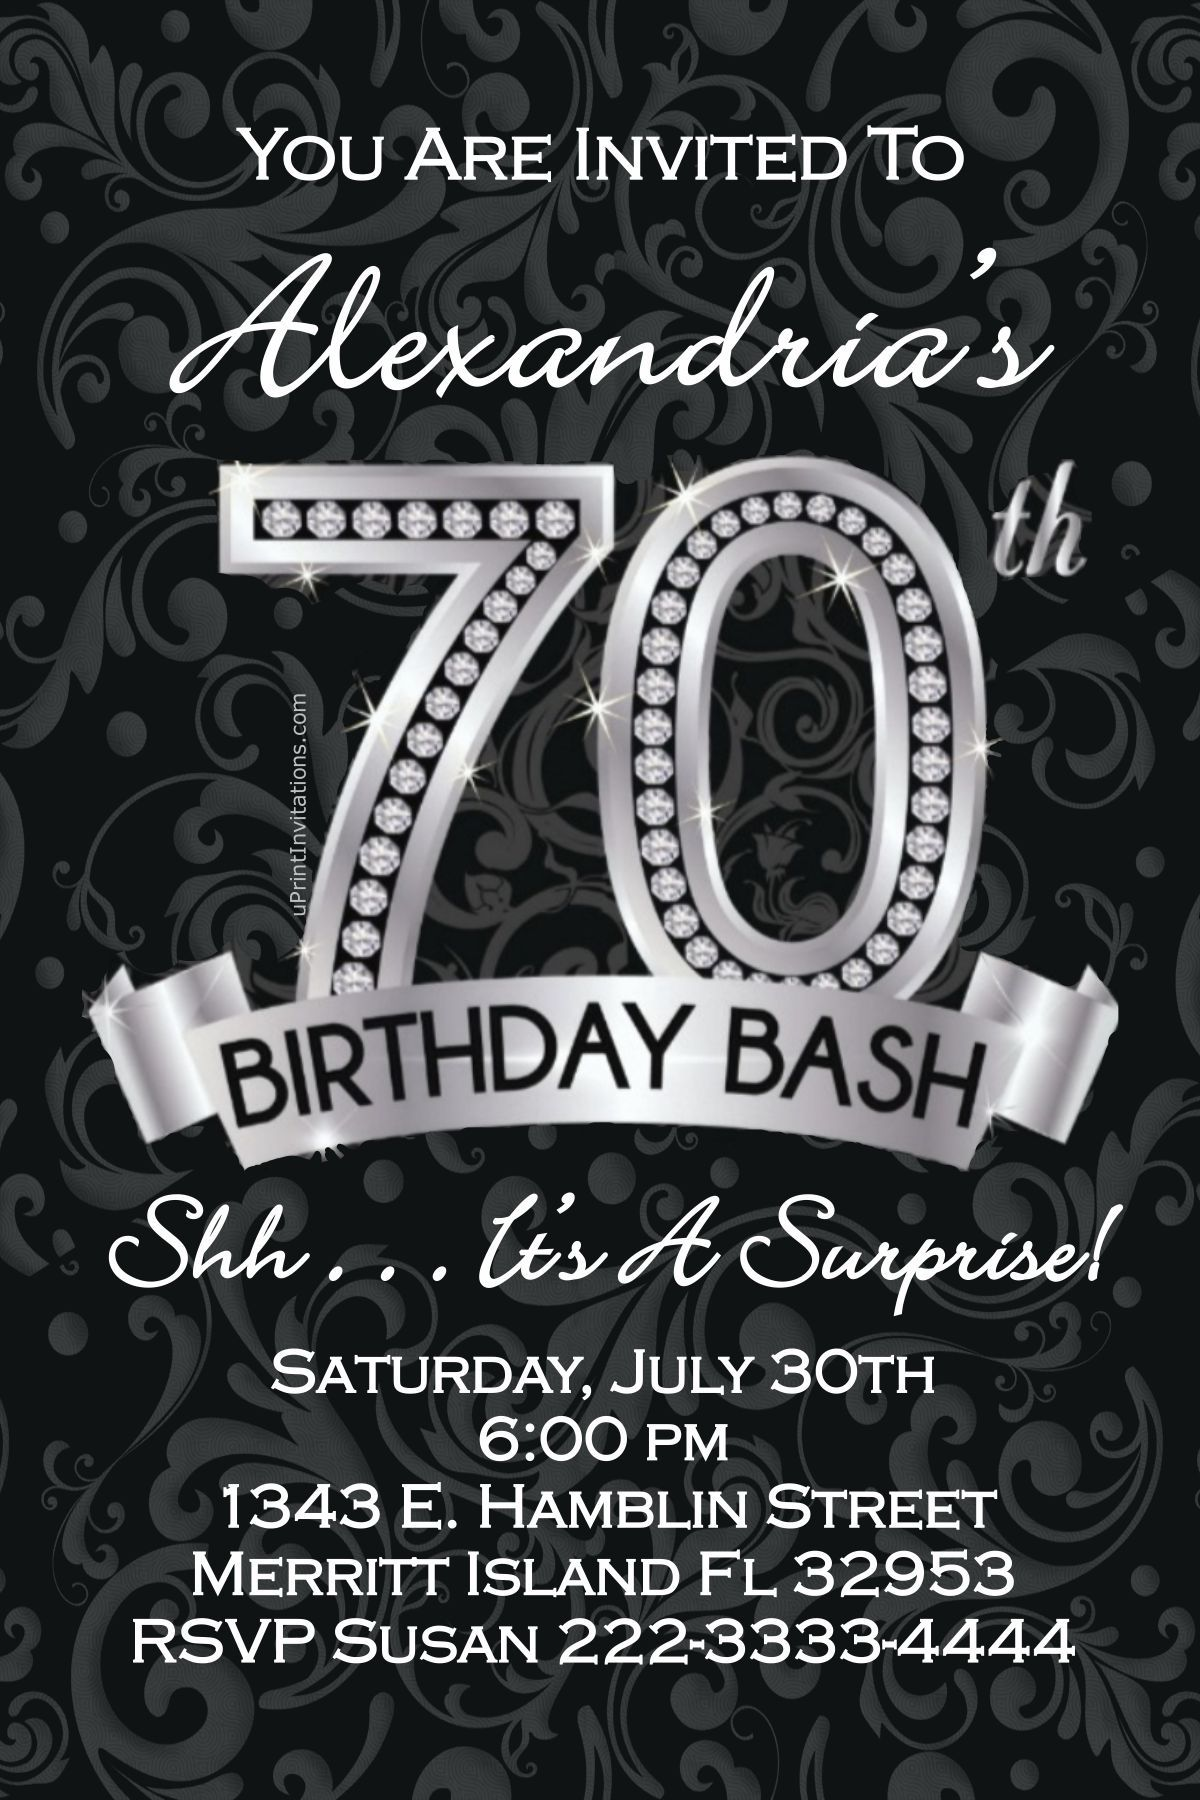 70th Birthday Invitations - Digital Download - Get these invitations ...